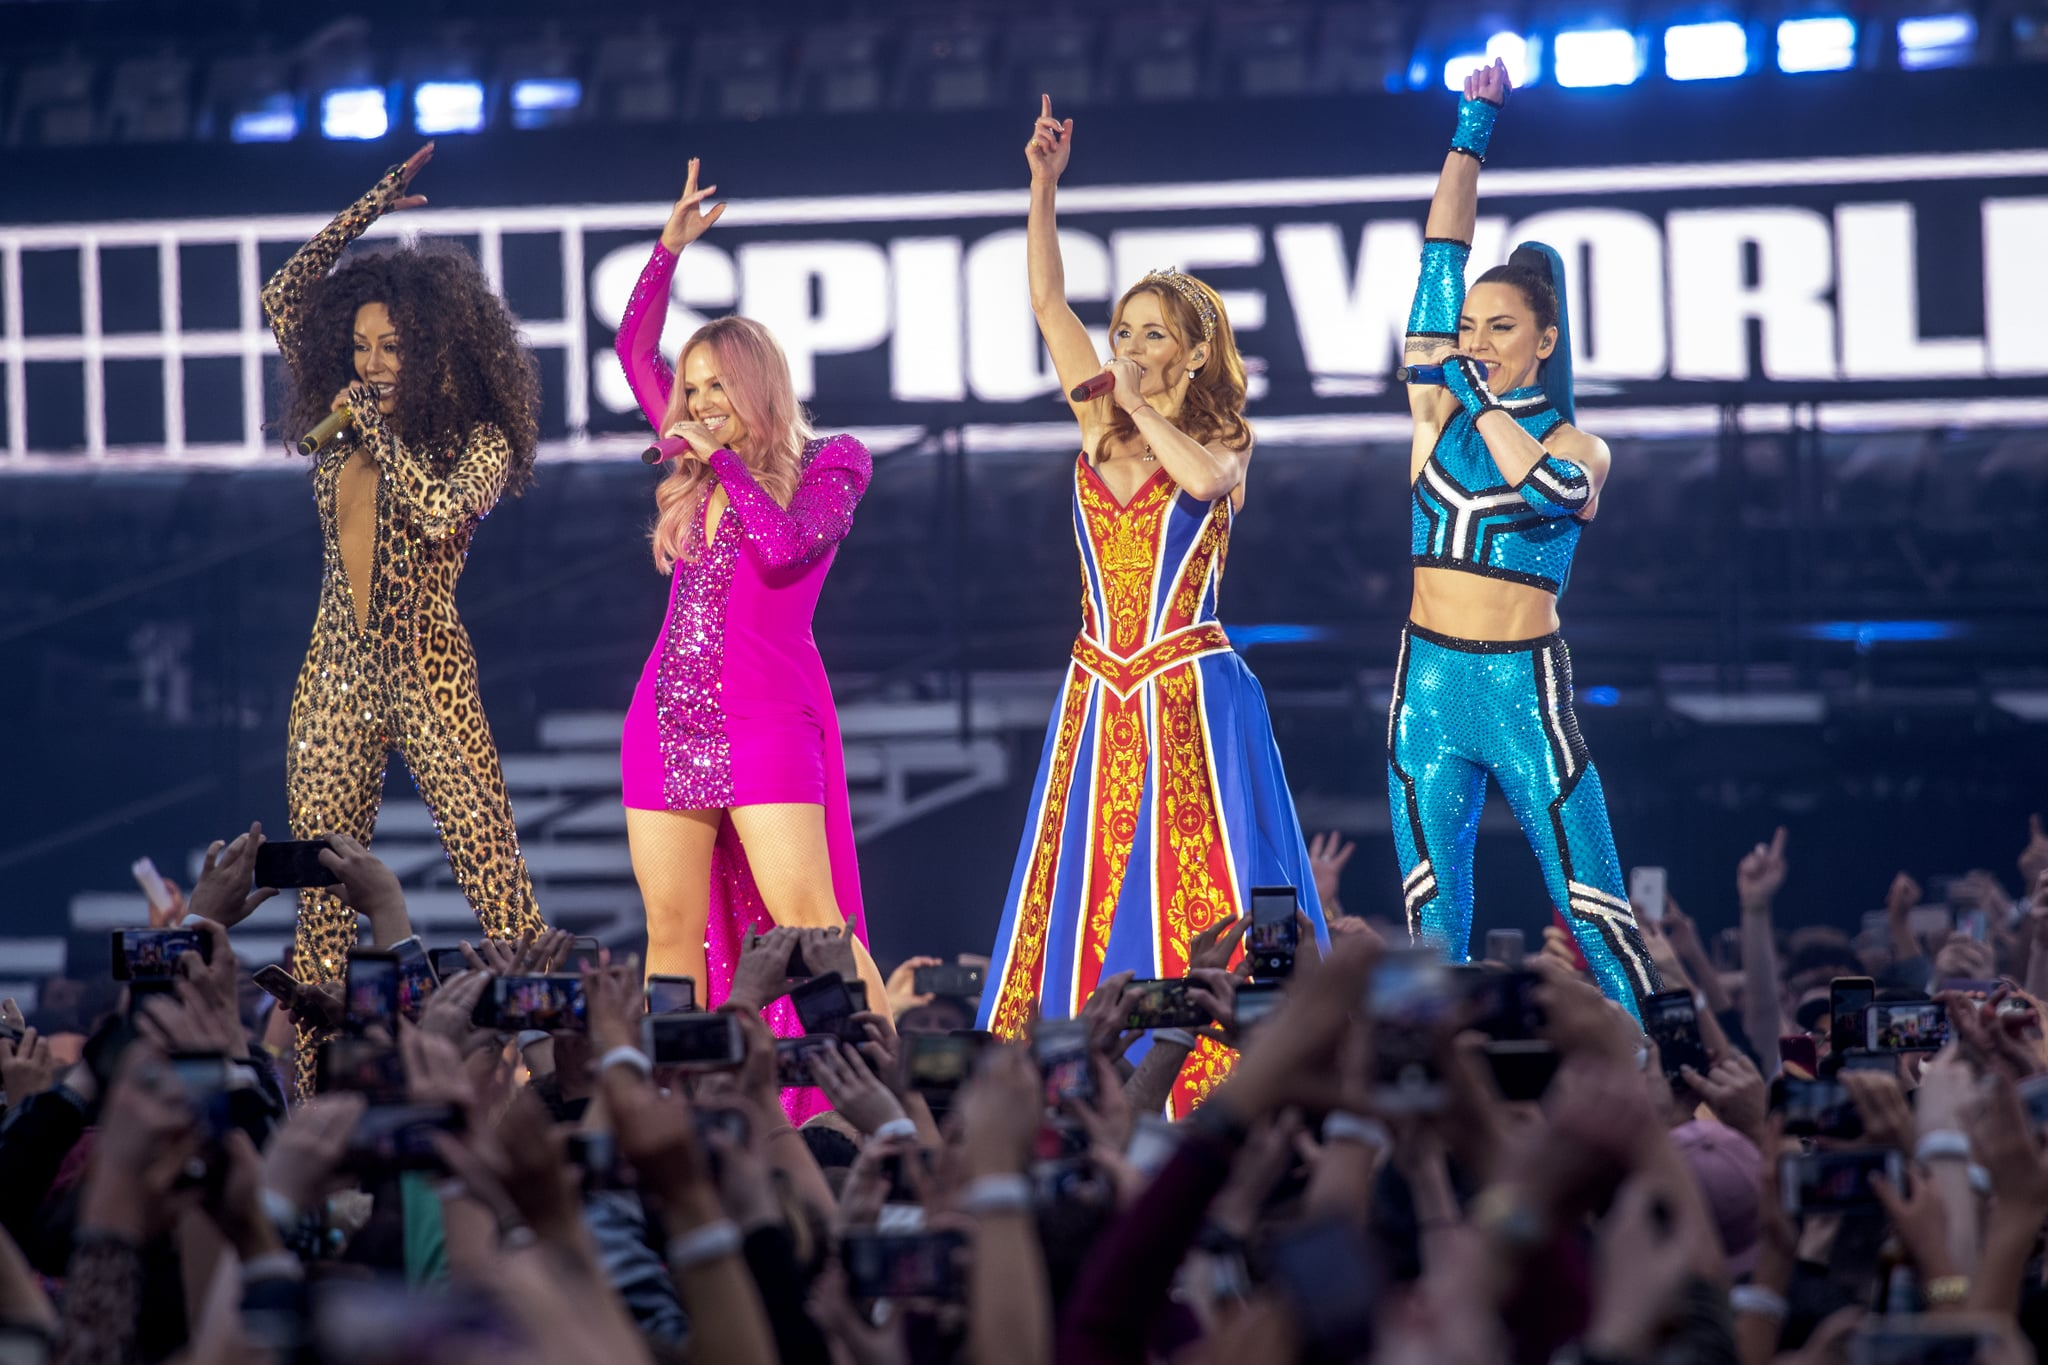 I Flew 3,000 Miles to See the Spice Girls in Concert, and It Was Worth Every Penny